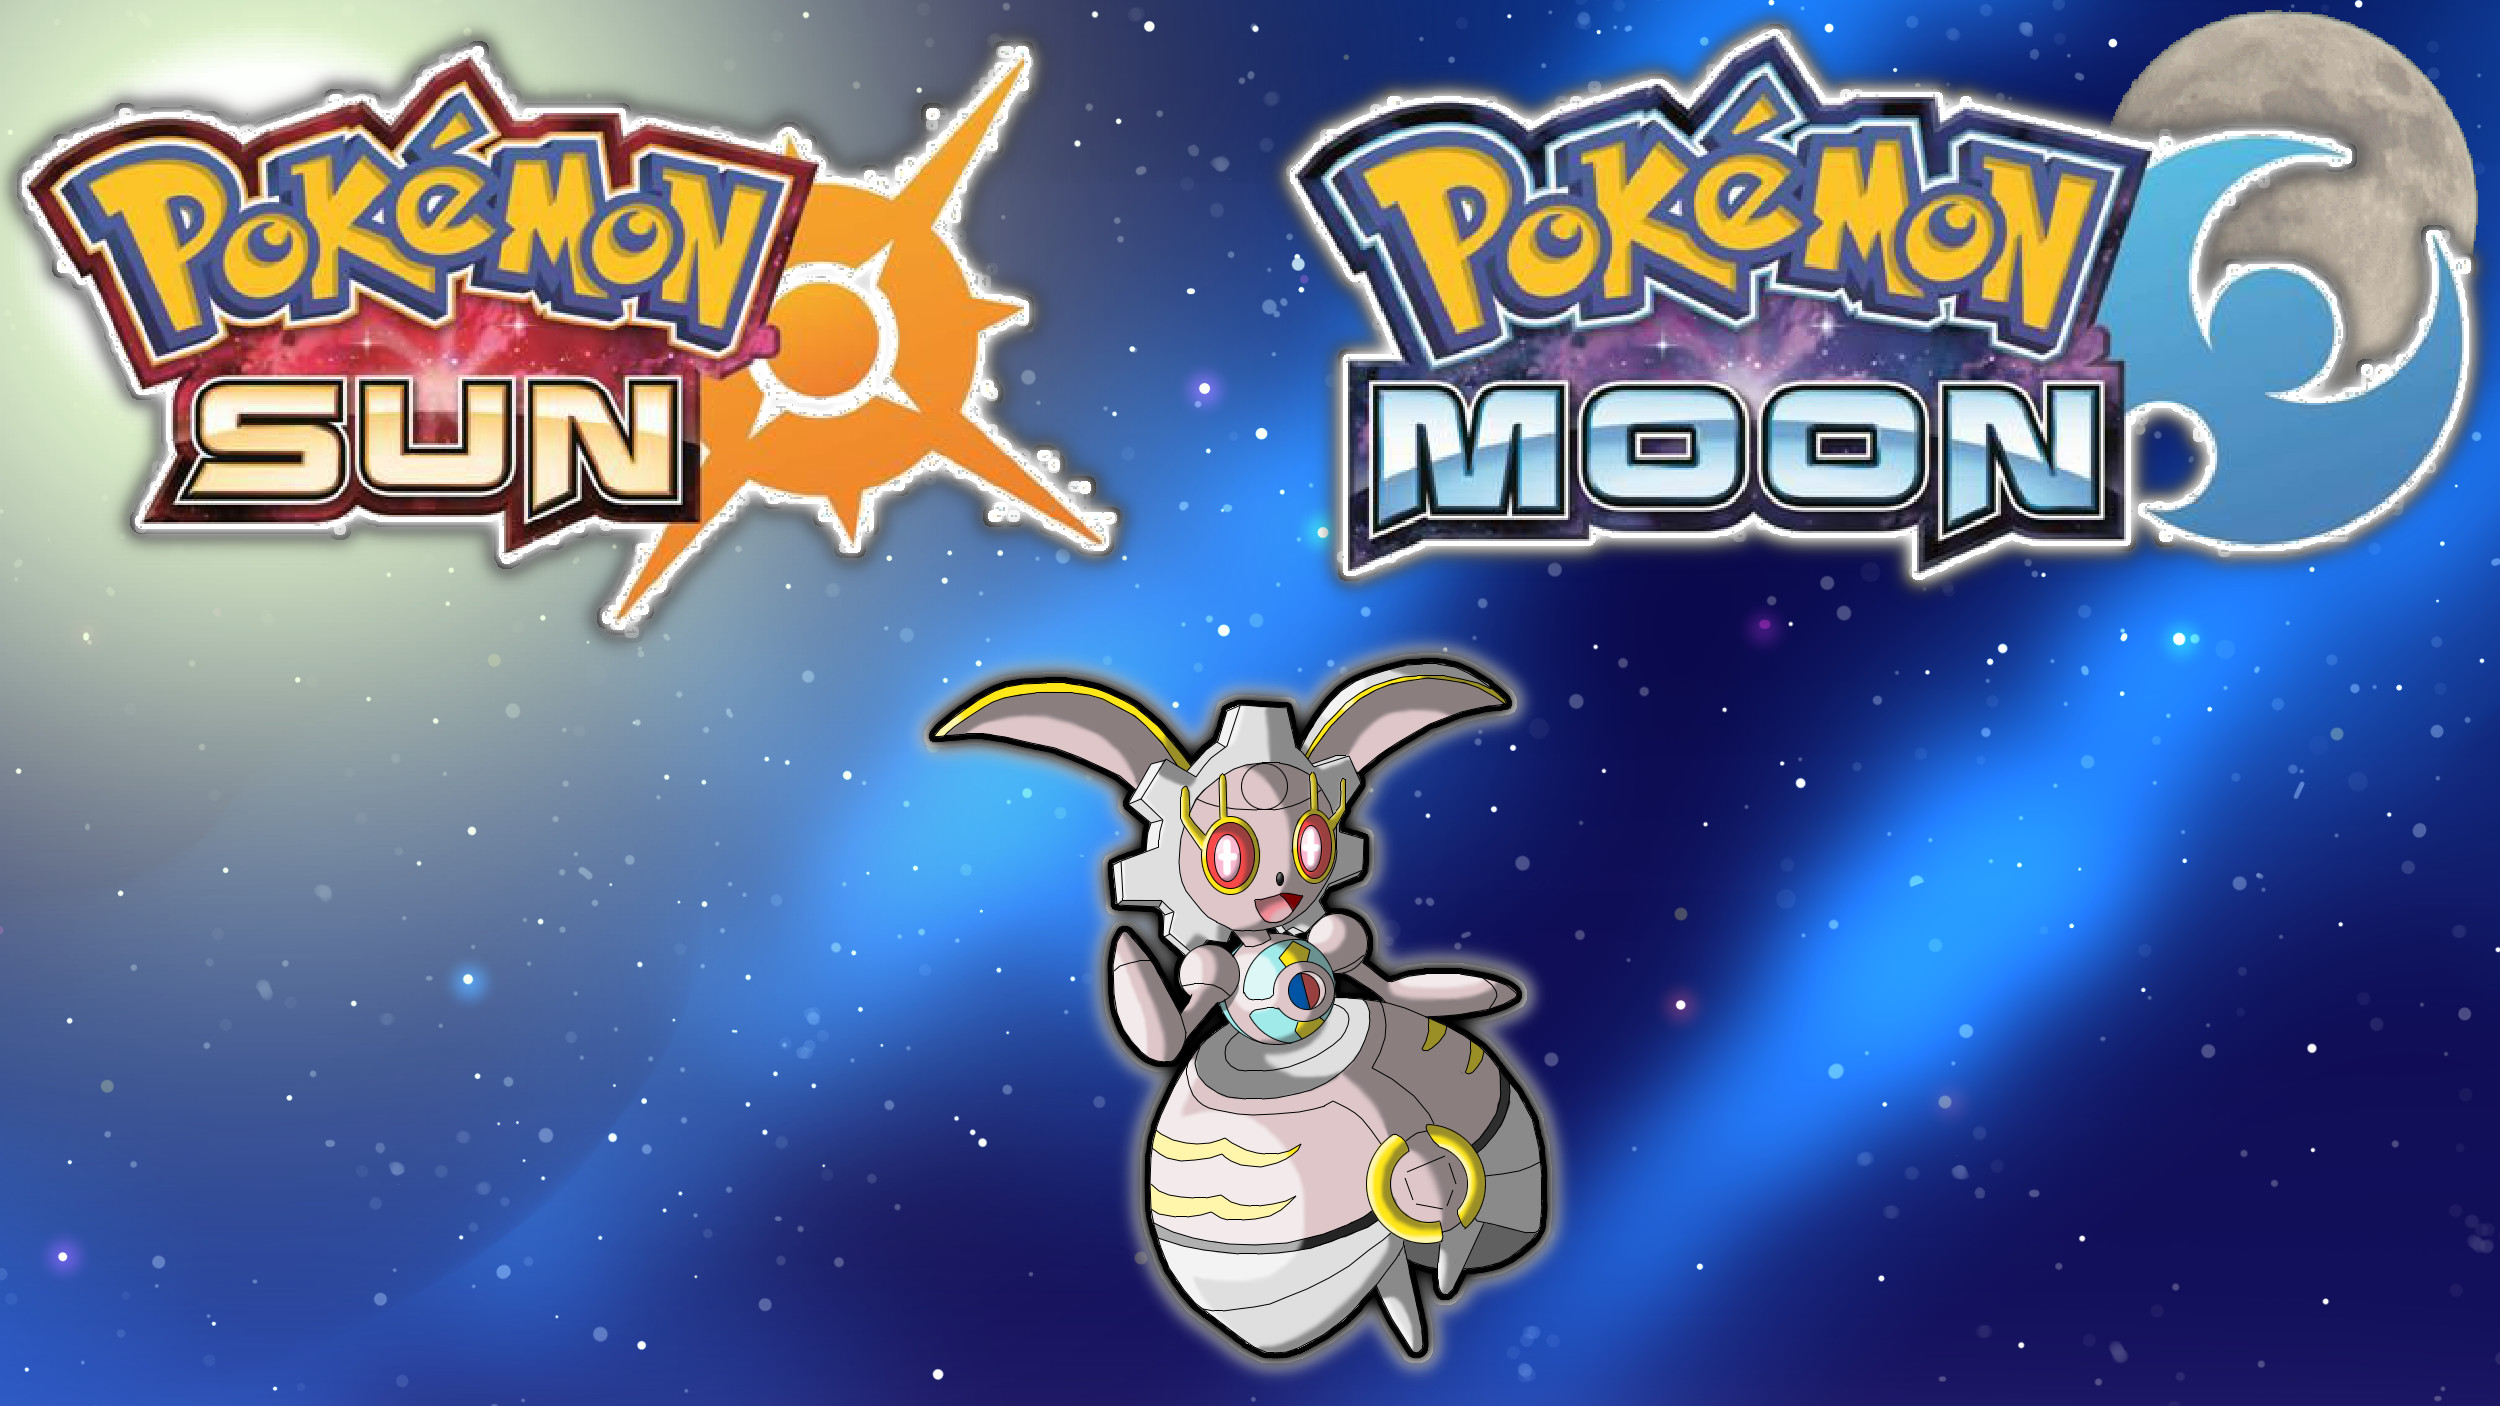 2500x1406 Pokemon Sun and Moon by scott910 Pokemon Sun and Moon by scott910